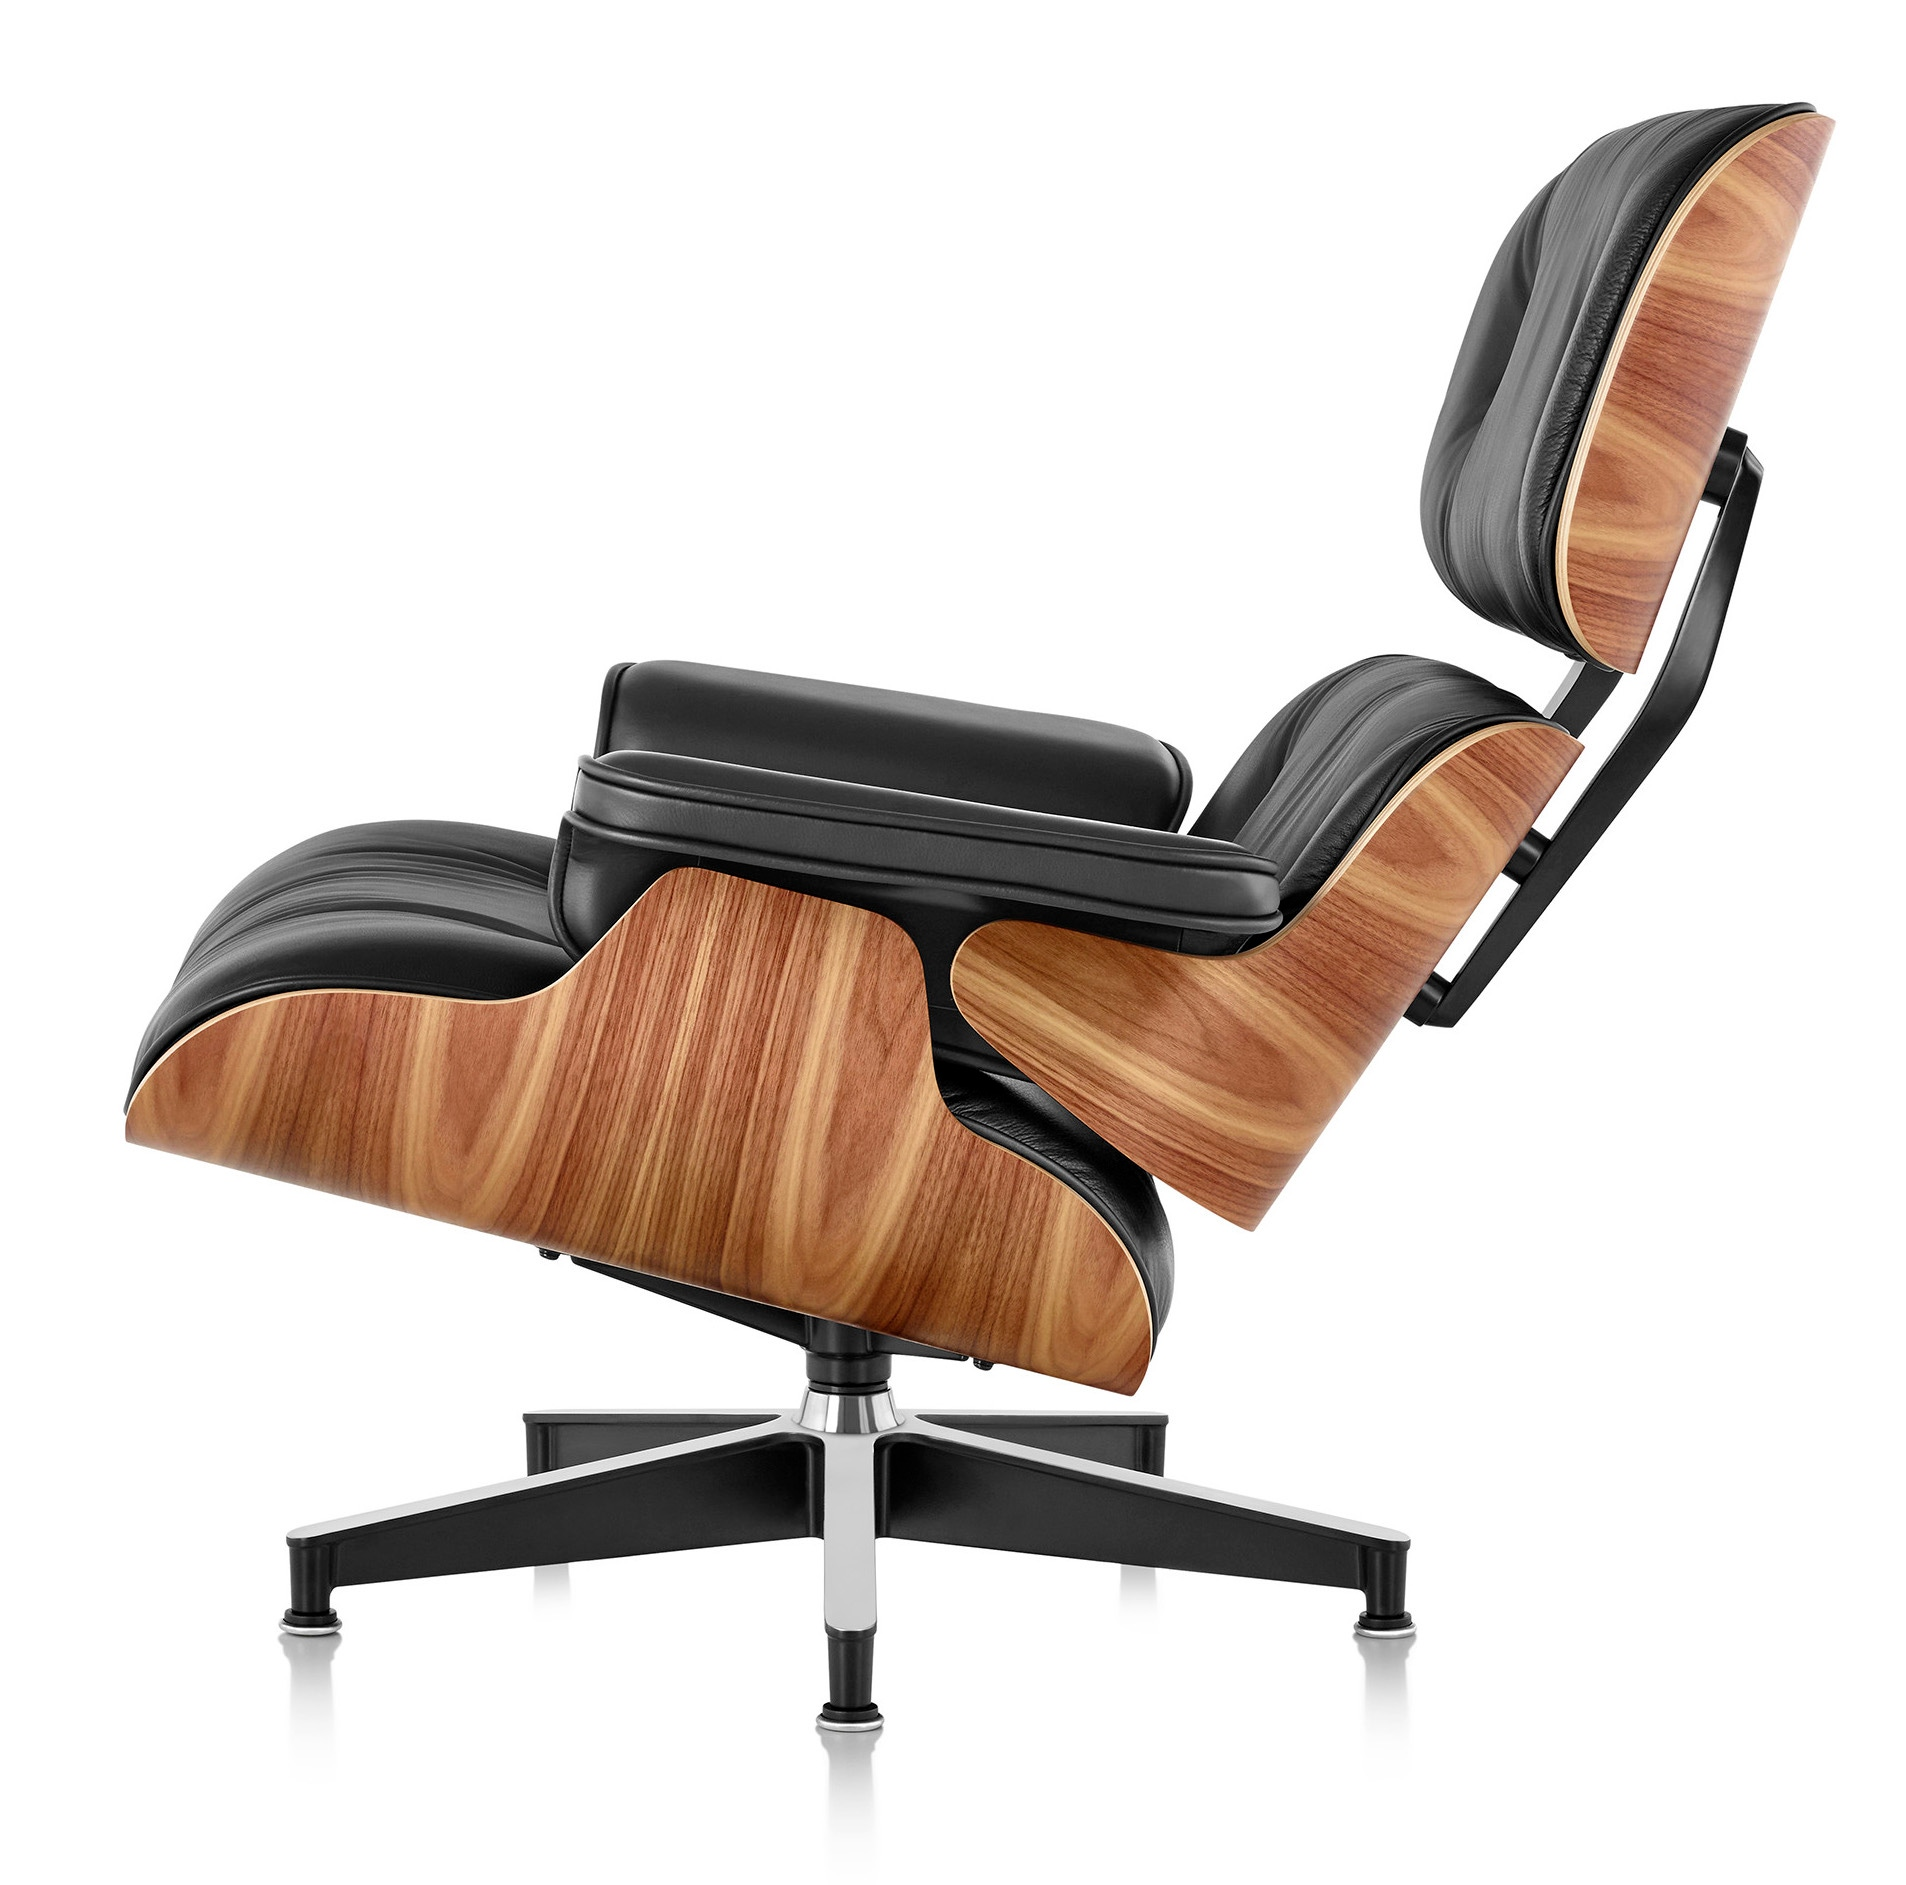 Luxury Eames Lounge Chair Reproduction Lovely  : eames lounge chair 6 from www.inmunoanalisis.com size 1906 x 1885 jpeg 429kB